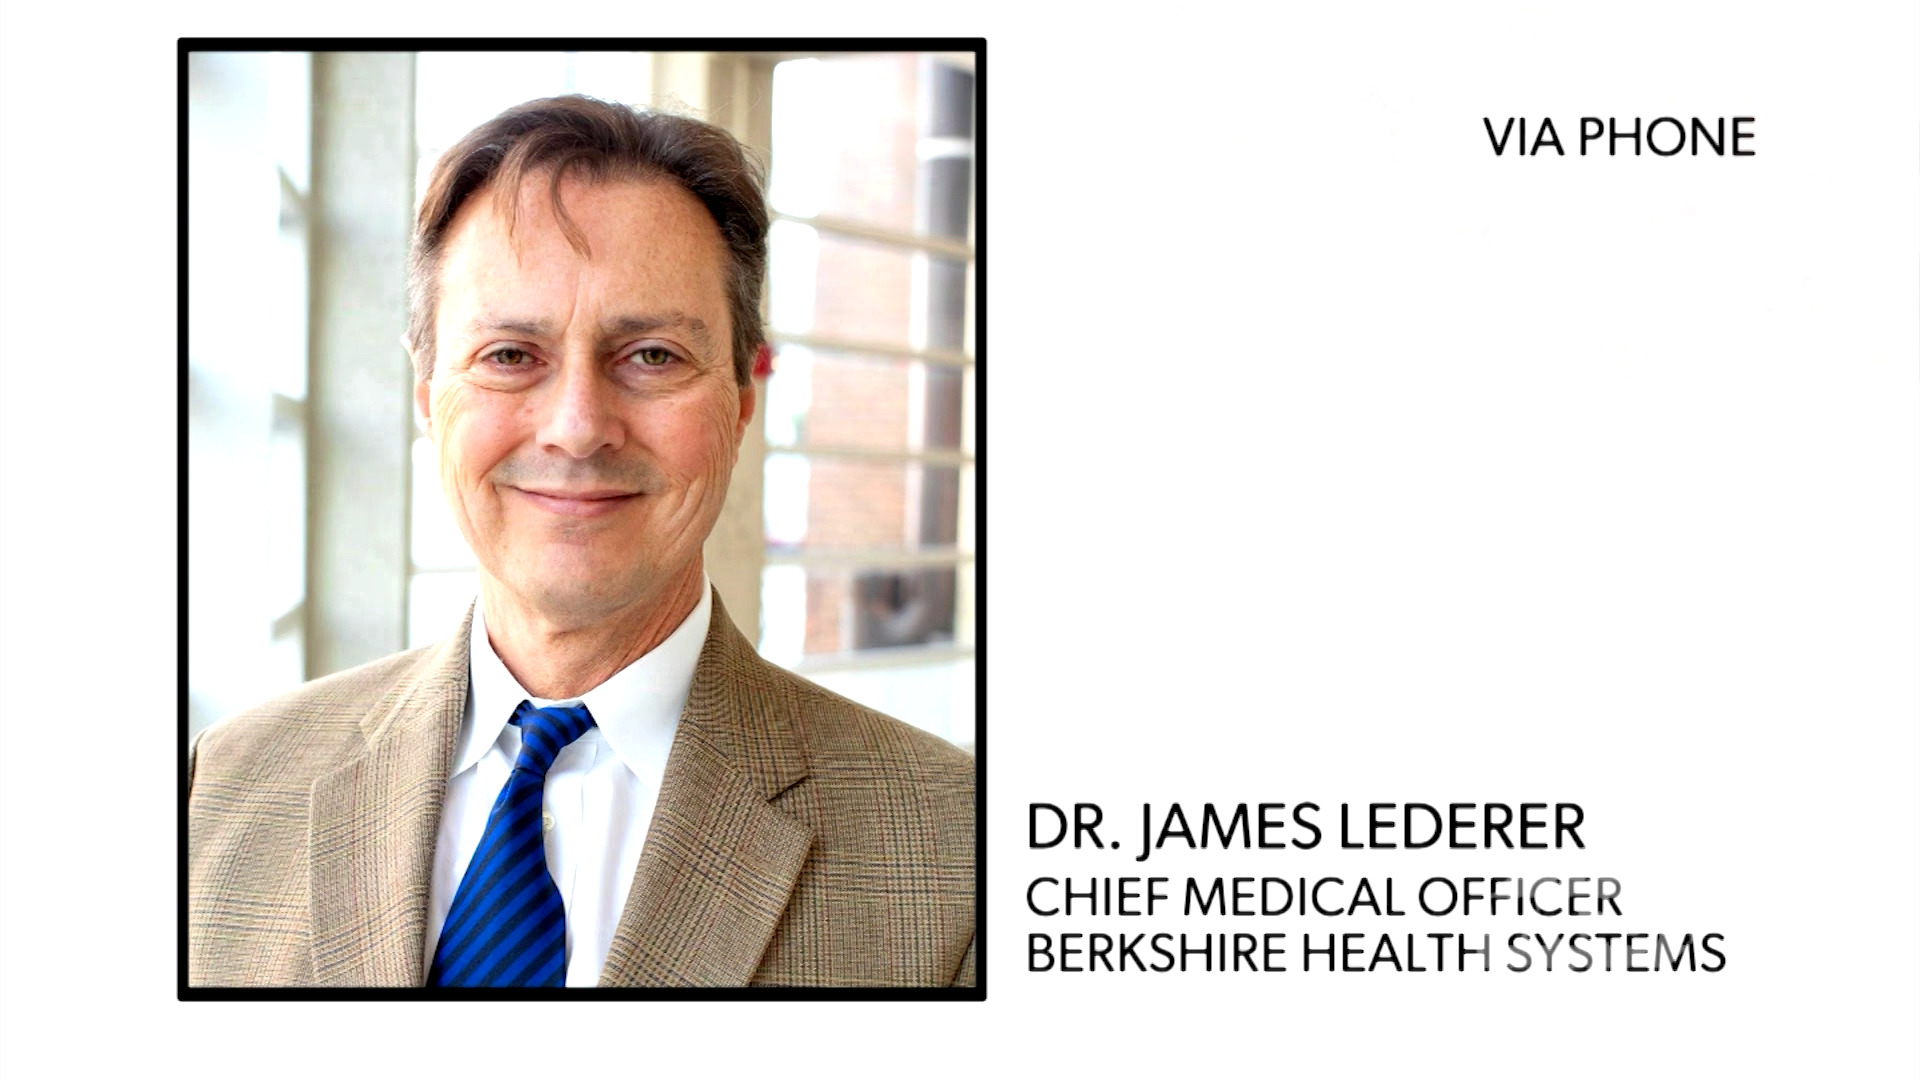 Berkshire Health Systems Chief Medical Officer Dr. James Lederer explains how the county's largest healthcare provider is dealing with COVID-19.